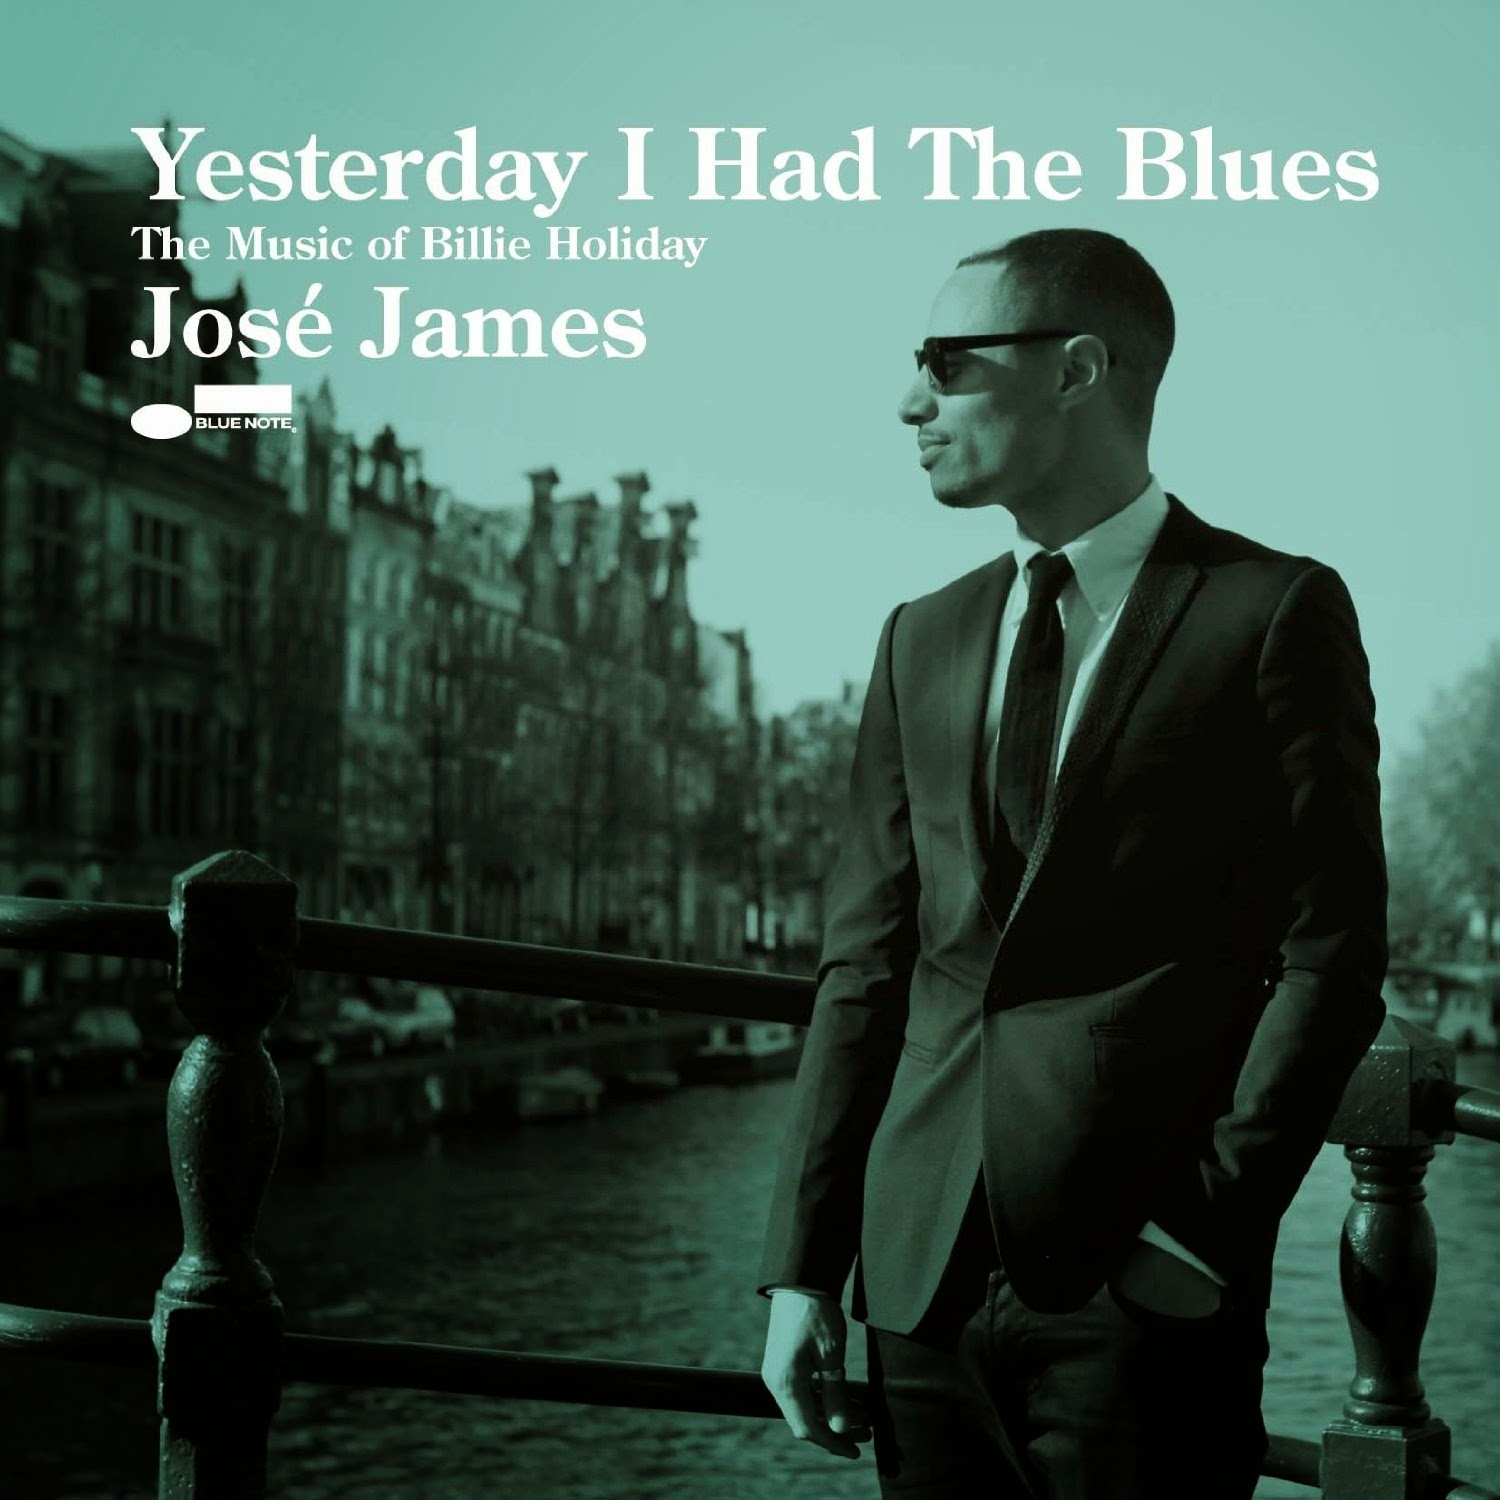 JOSÉ JAMES: YESTERDAY I HAD THE BLUES